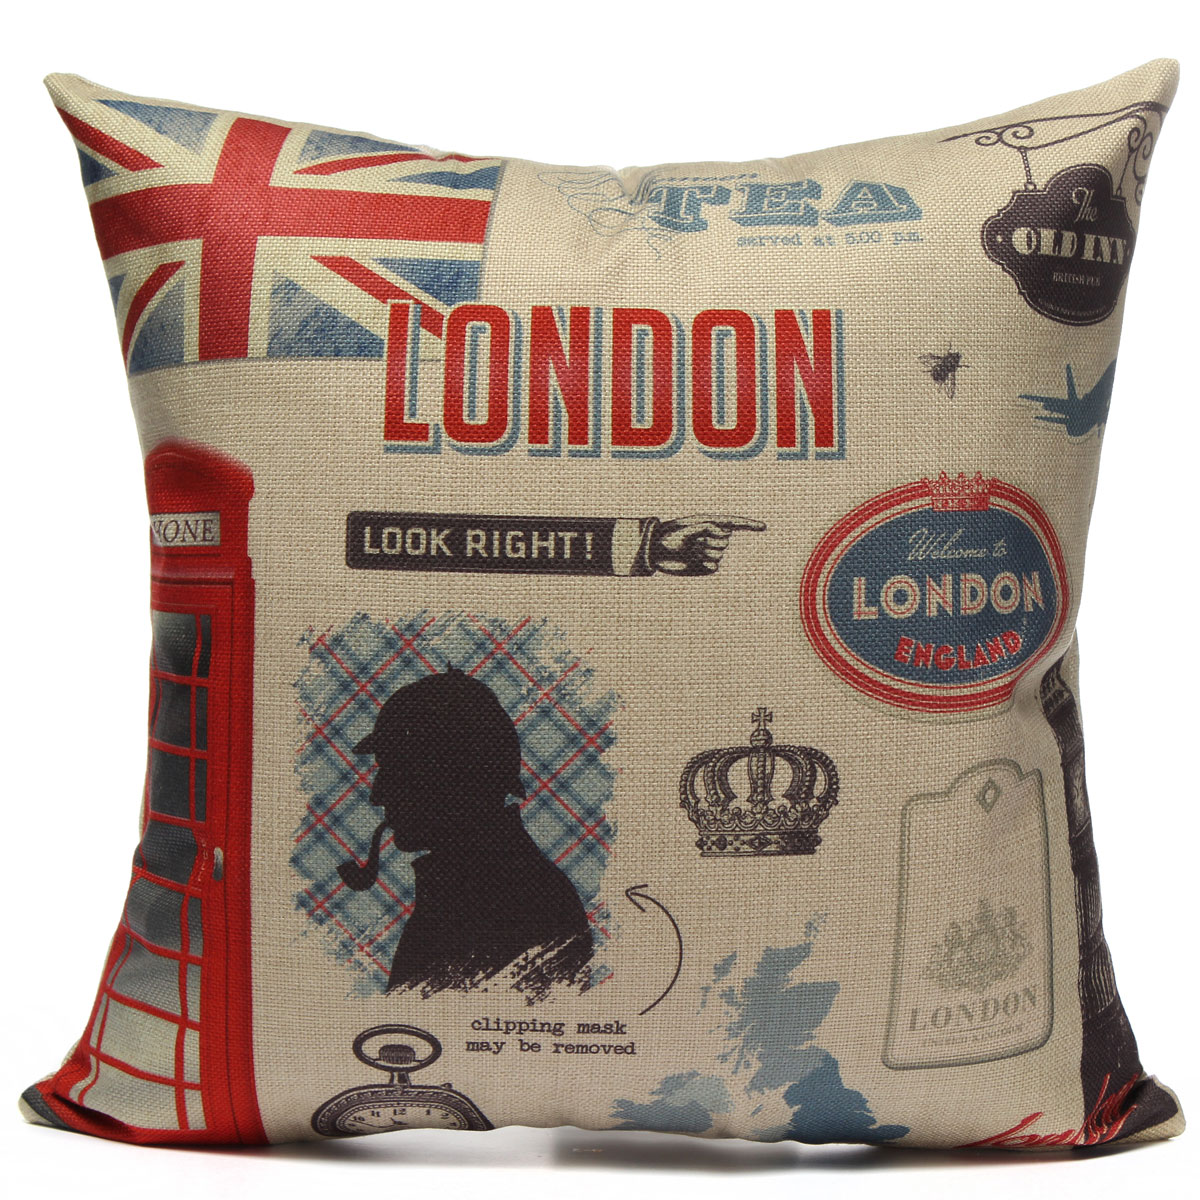 Retro British London Style Pillow Case Cushion Cover Cotton Linen 43x43cm NEW